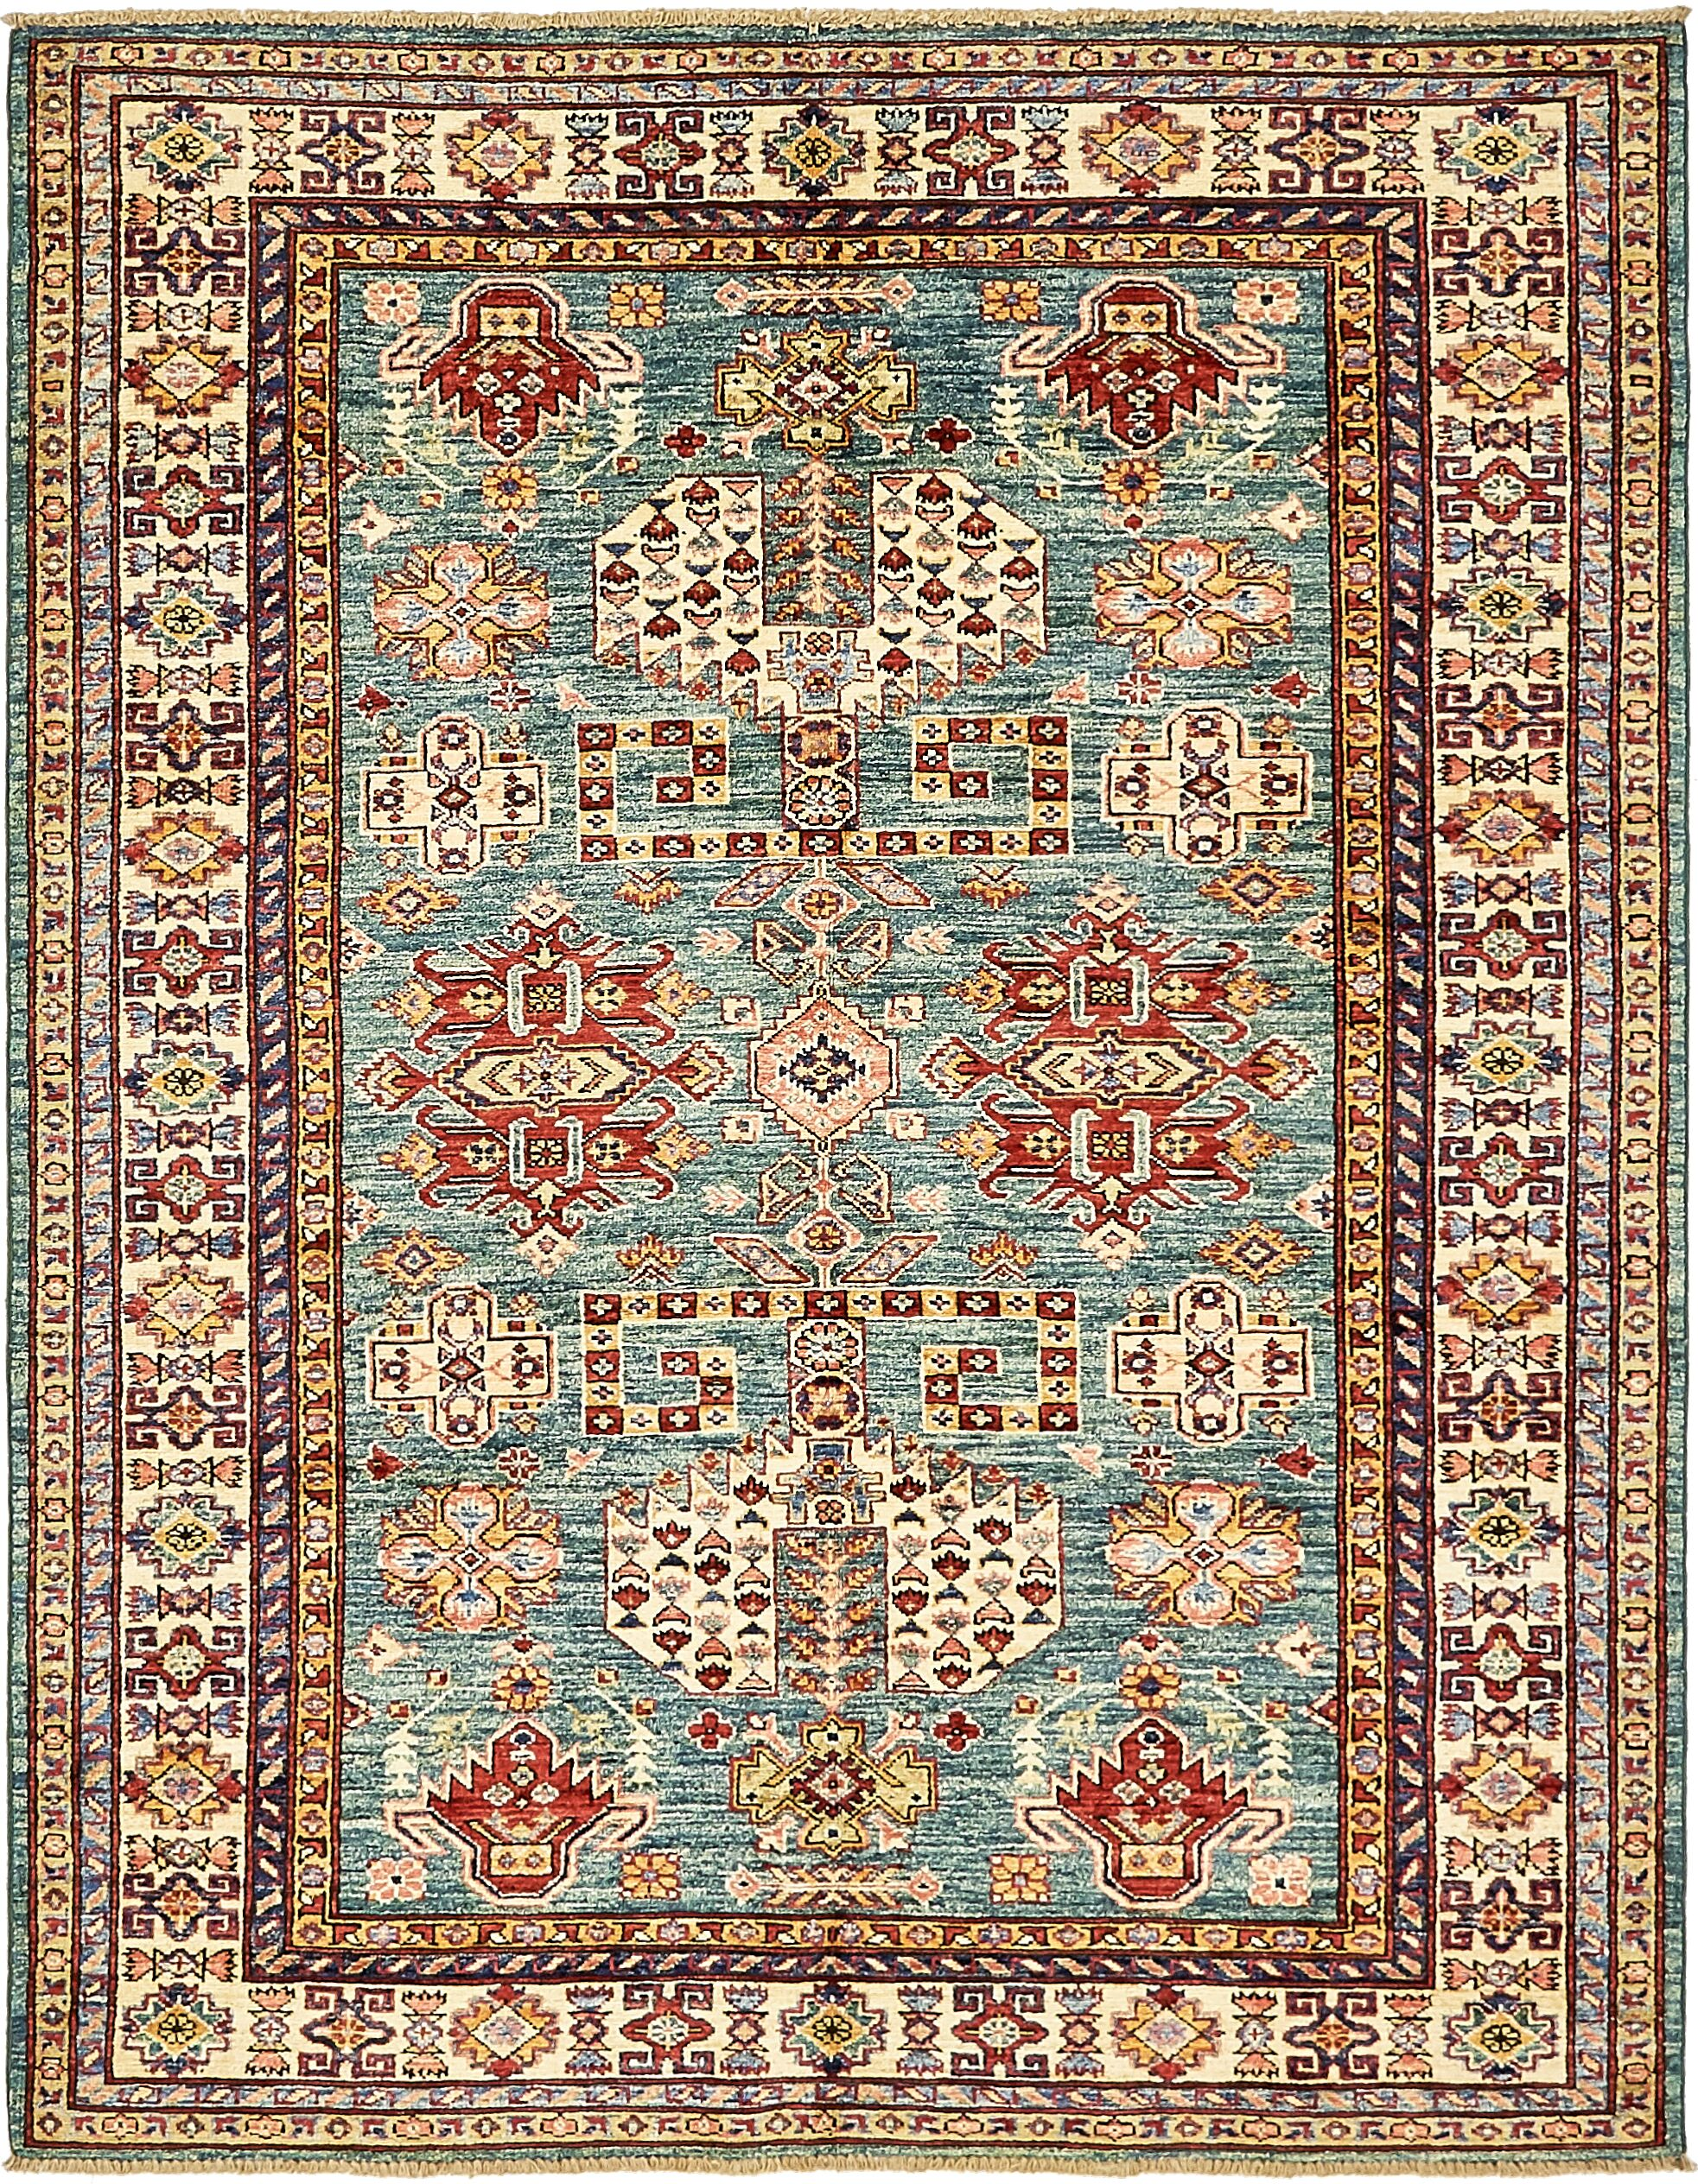 One-of-a-Kind Alayna Hand-Knotted Wool Blue/Beige/Red Area Rug